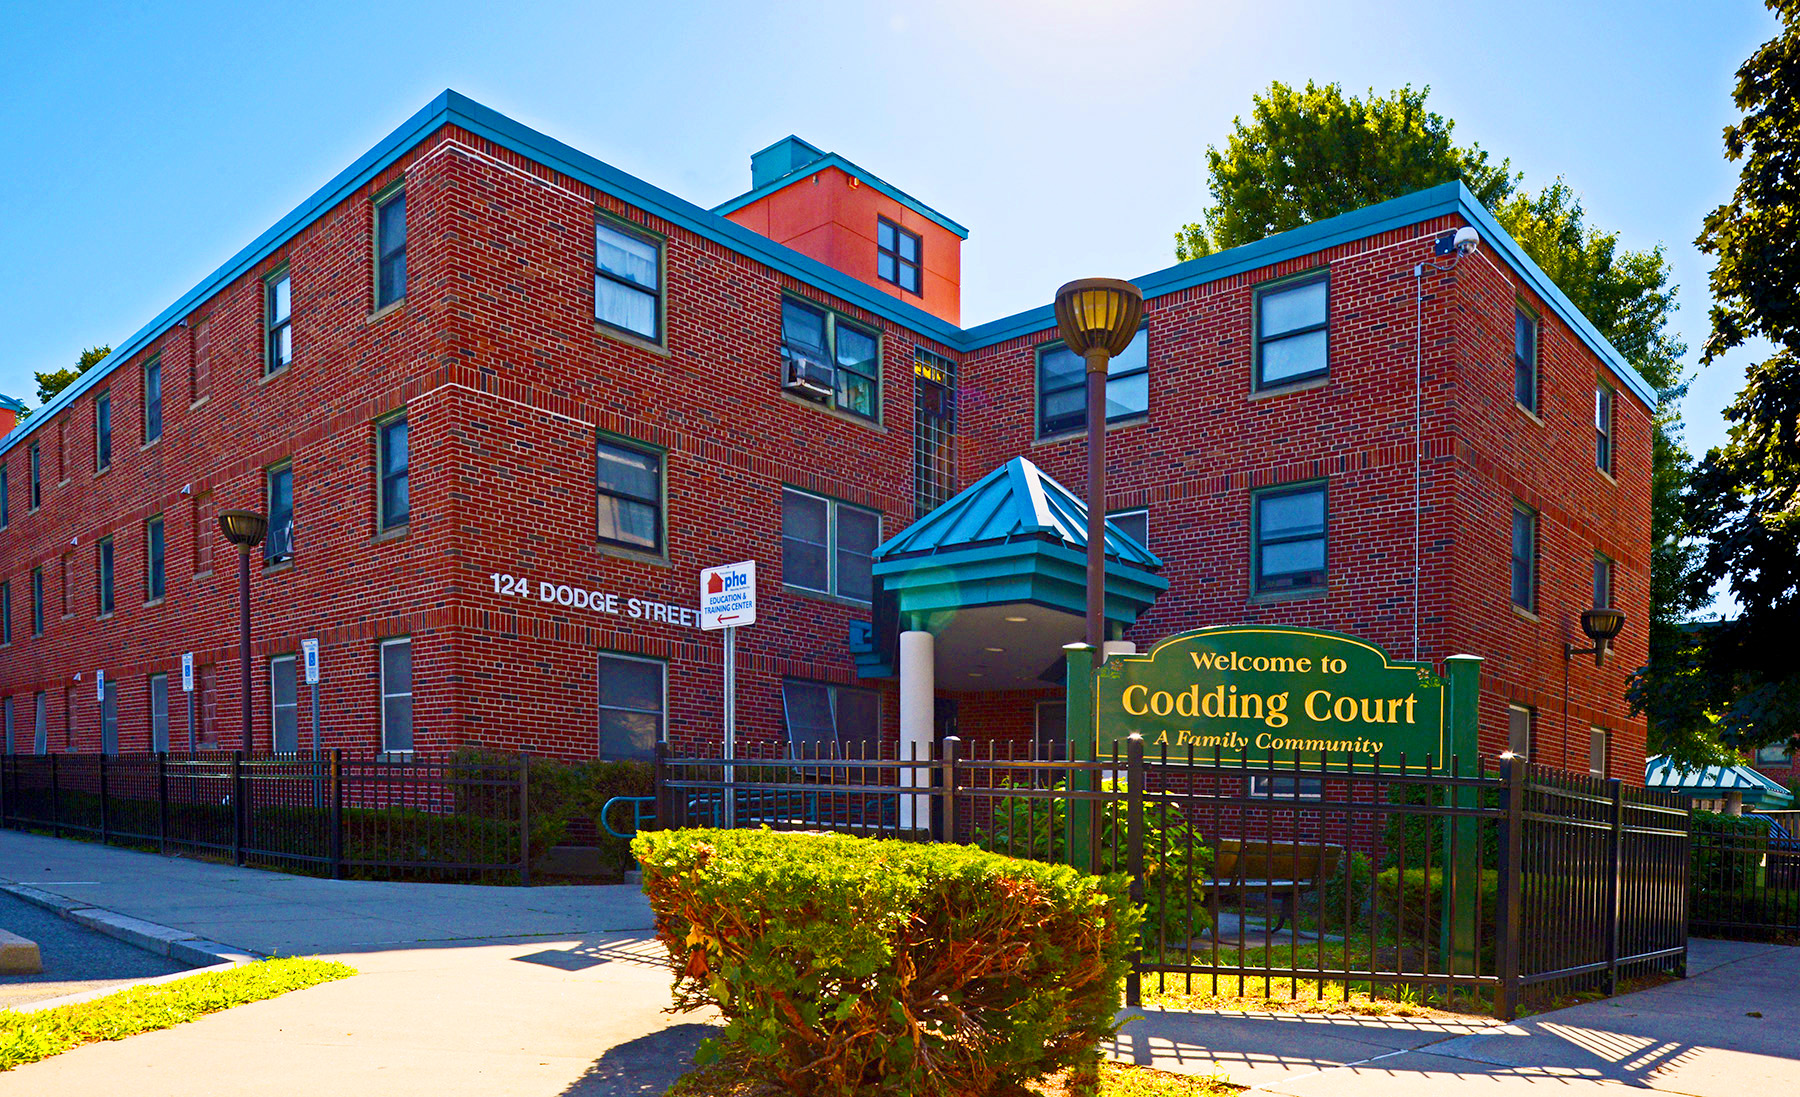 Image of Codding Court